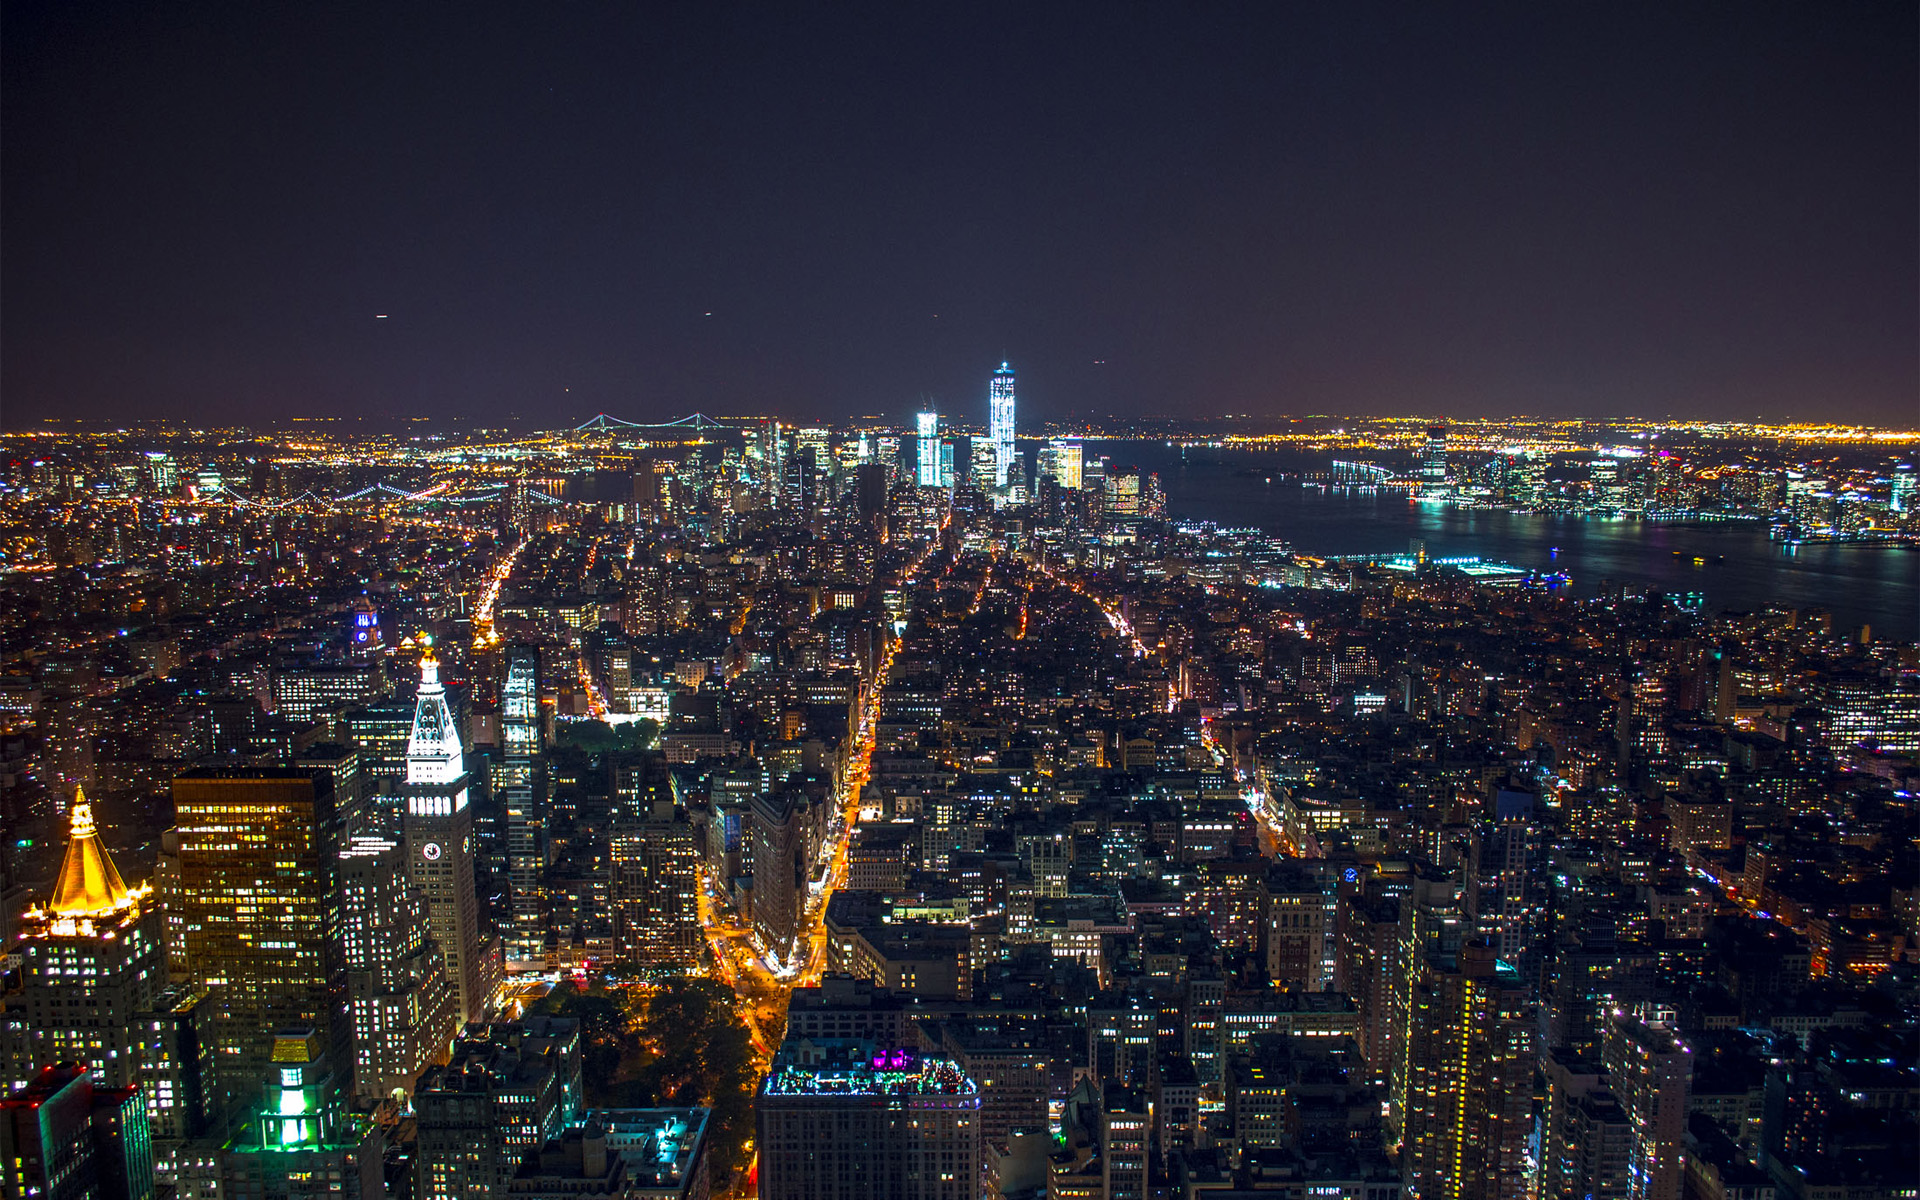 Nyc At Night Wallpaper Posted By Ethan Mercado